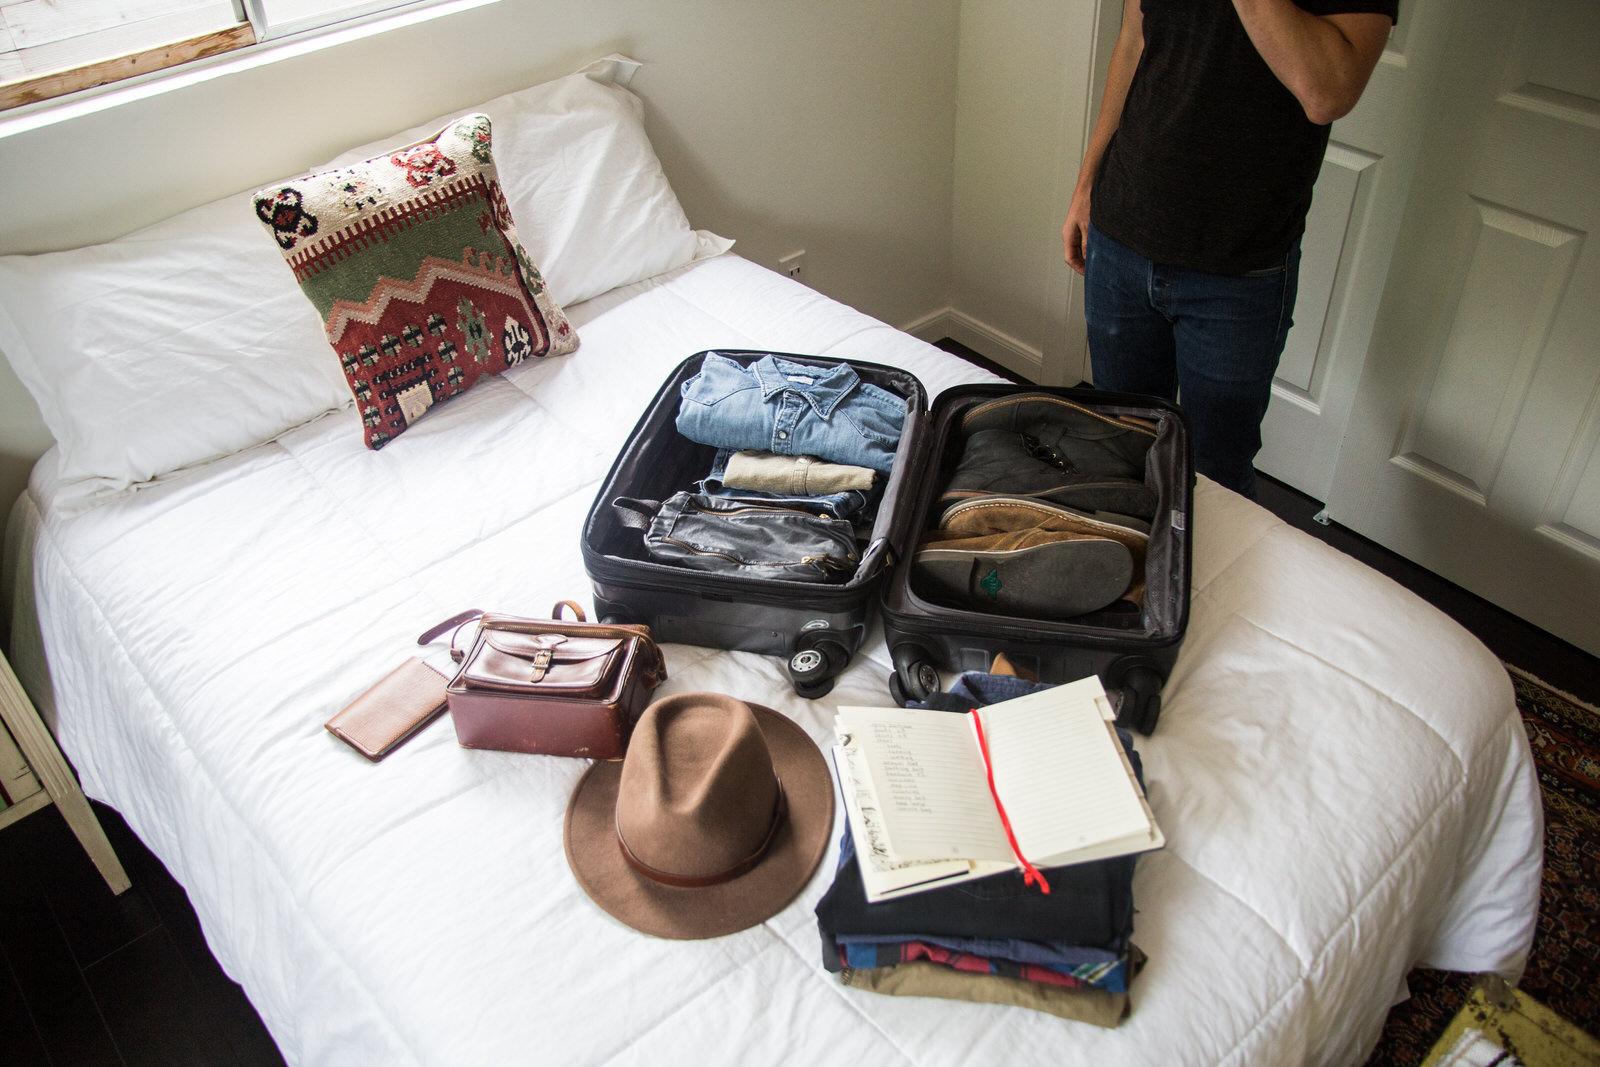 Adventure-Assist-Backpack-vs-Suitcase-how-to-choose-on-your-next-trip.jpg